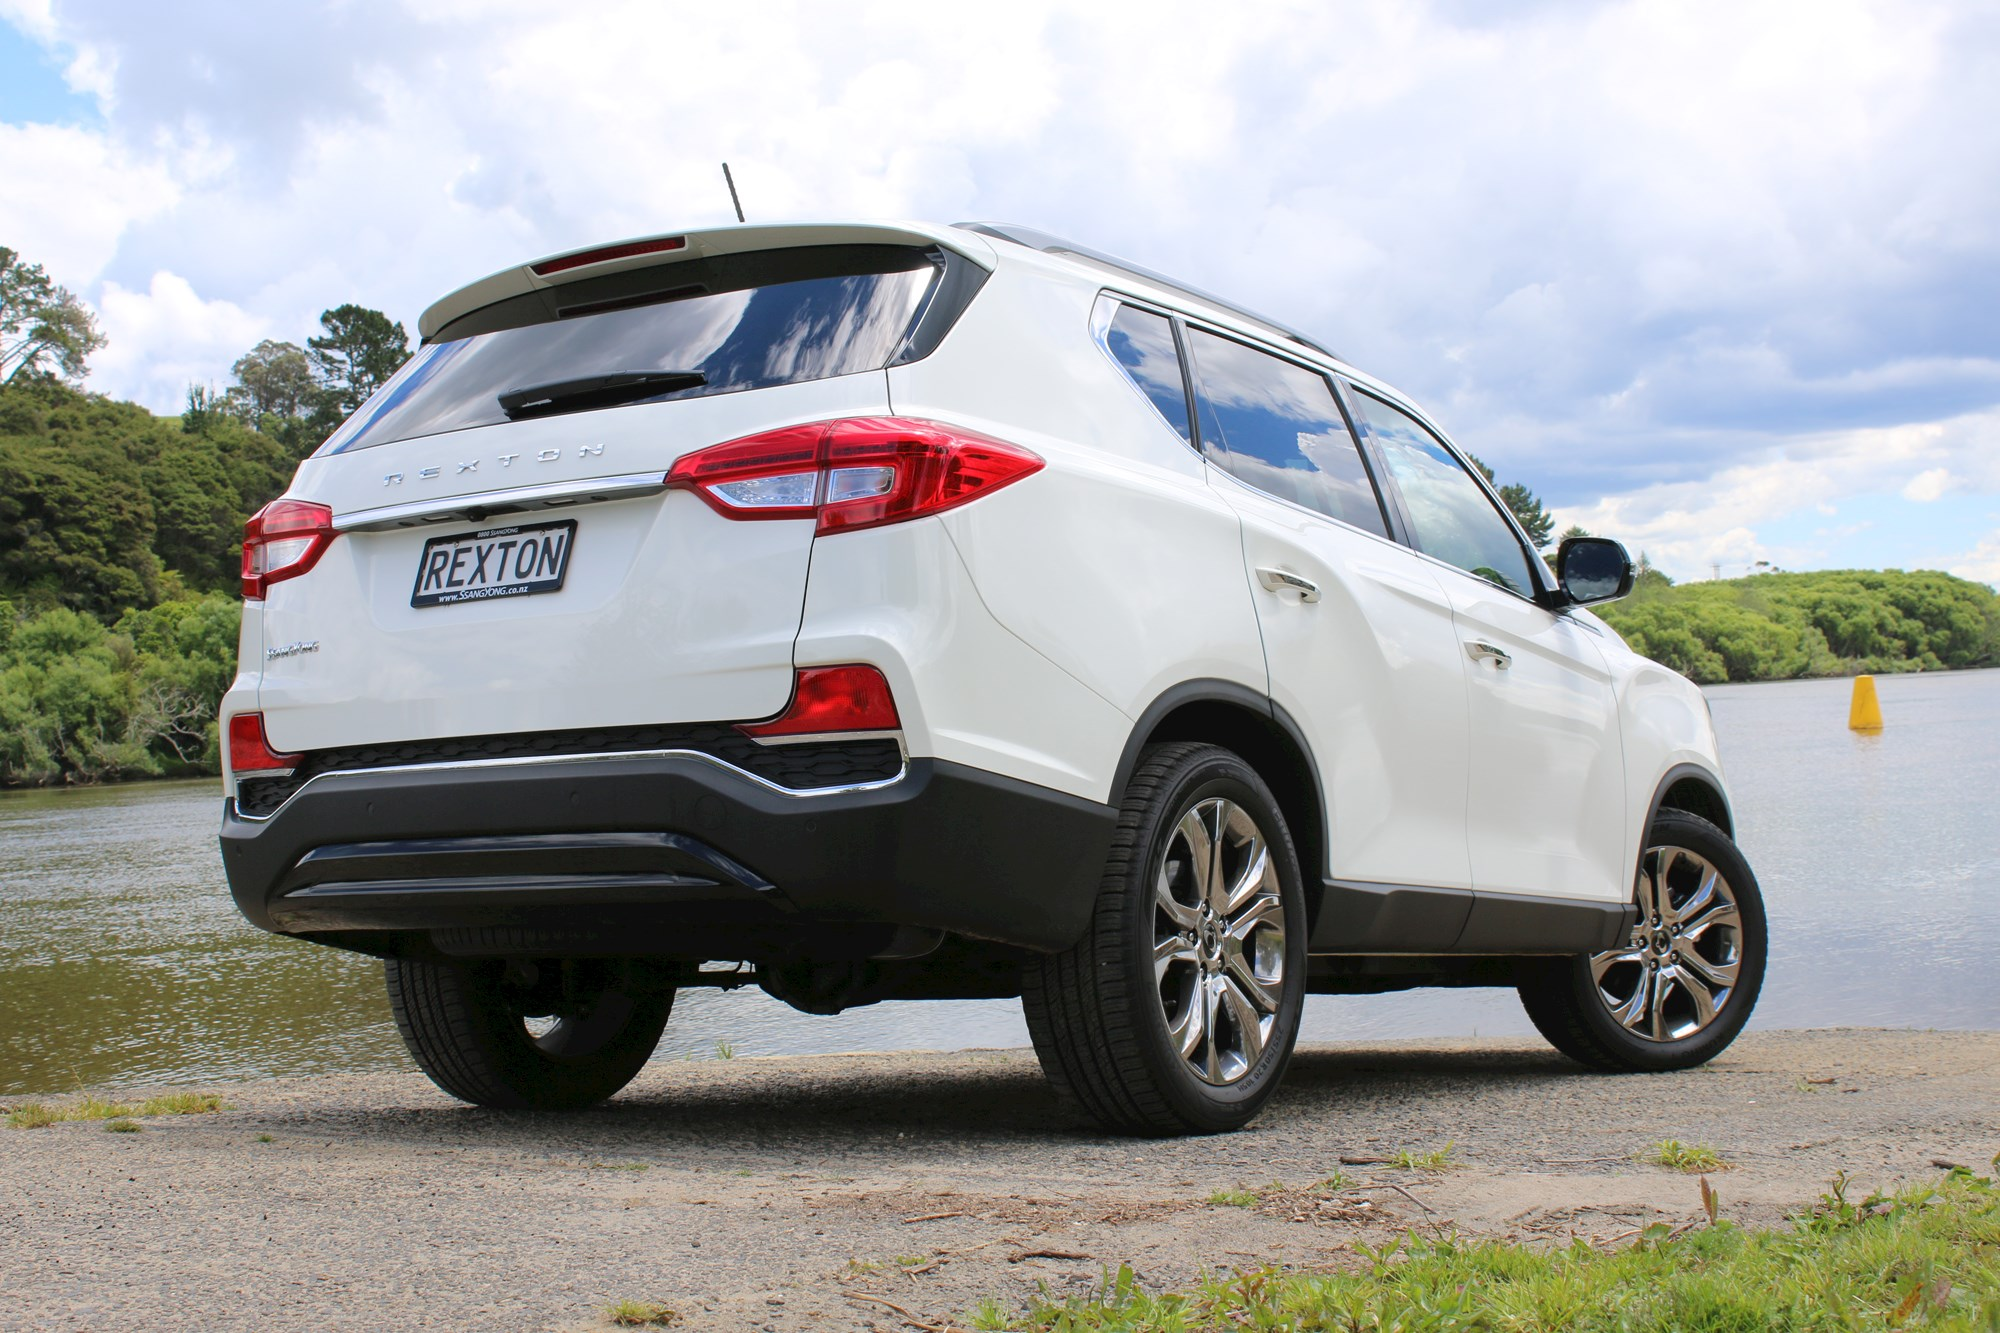 SsangYong Rexton G4: Fourth time lucky - Road tests - Driven